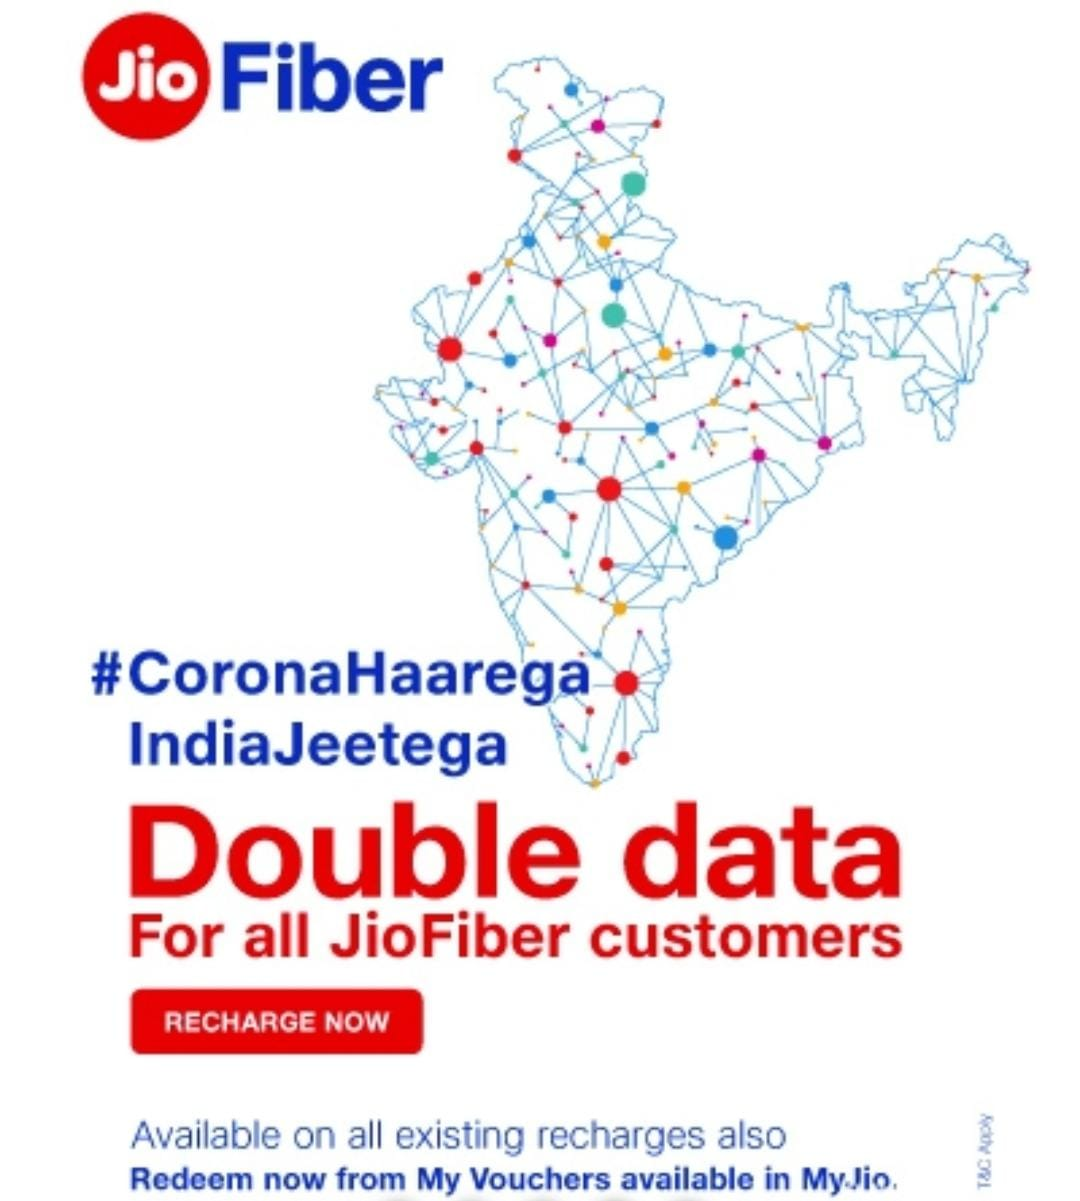 jio fiber all over india